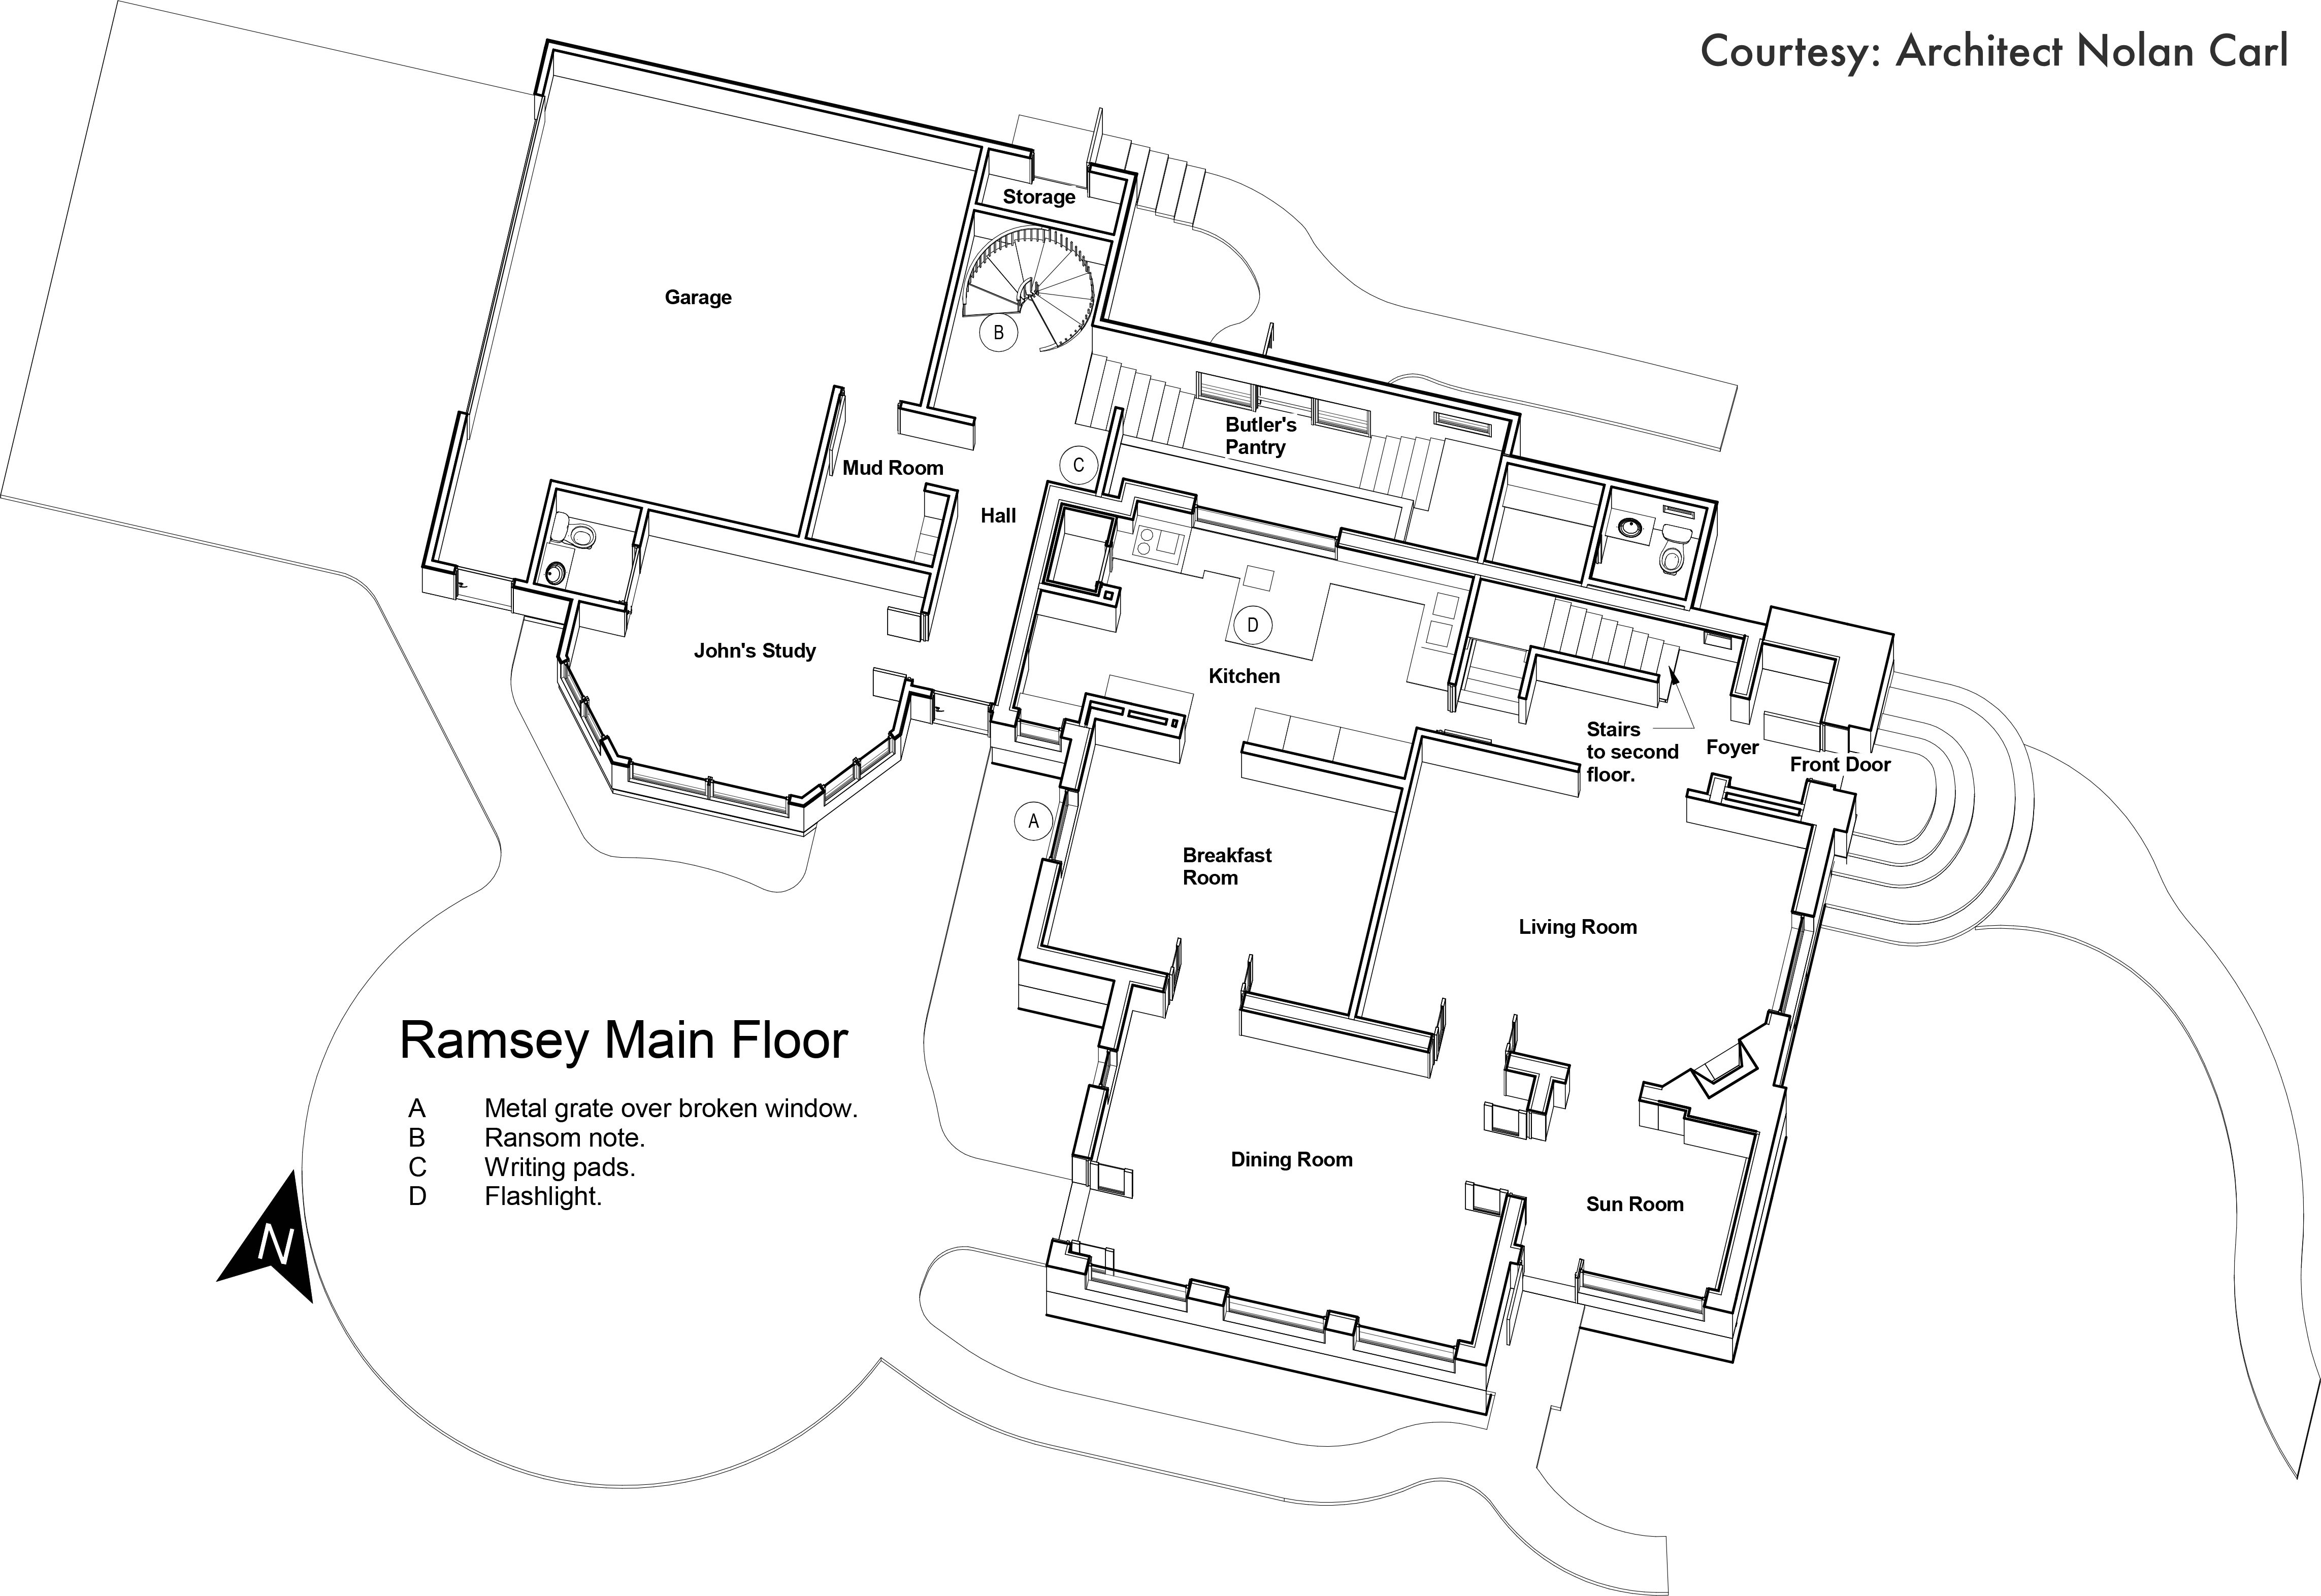 JonBenet Ramsey Case Encyclopedia / The House on dayton floor plan, beach haven floor plan, milford floor plan, ridgewood floor plan, westwood floor plan, somerset floor plan, benson floor plan, garfield floor plan, somerville floor plan, richland floor plan, montague floor plan, millstone floor plan, barrington floor plan, lexington floor plan, benton floor plan, norwood floor plan, roosevelt floor plan, clayton floor plan, woodbridge floor plan, chatham floor plan,